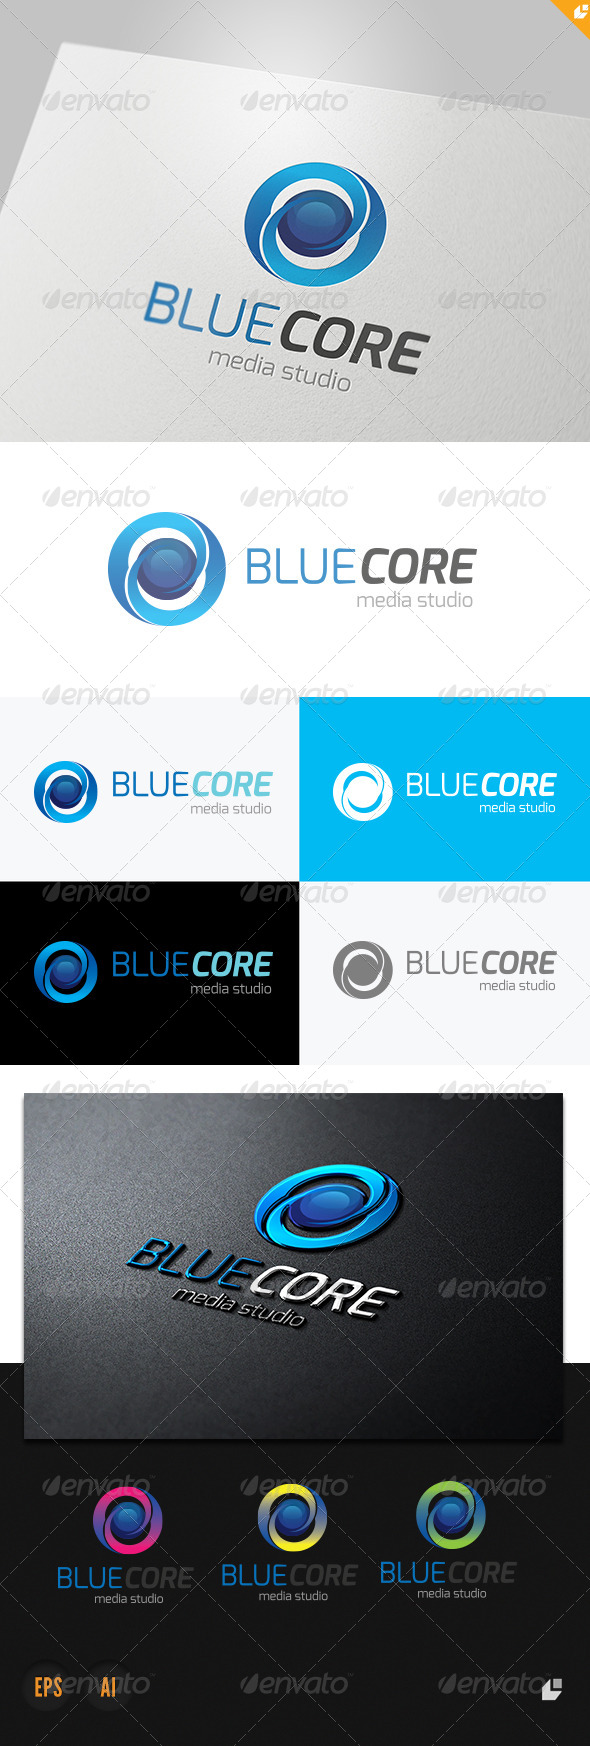 GraphicRiver Blue Core Media Studio Logo 4057802